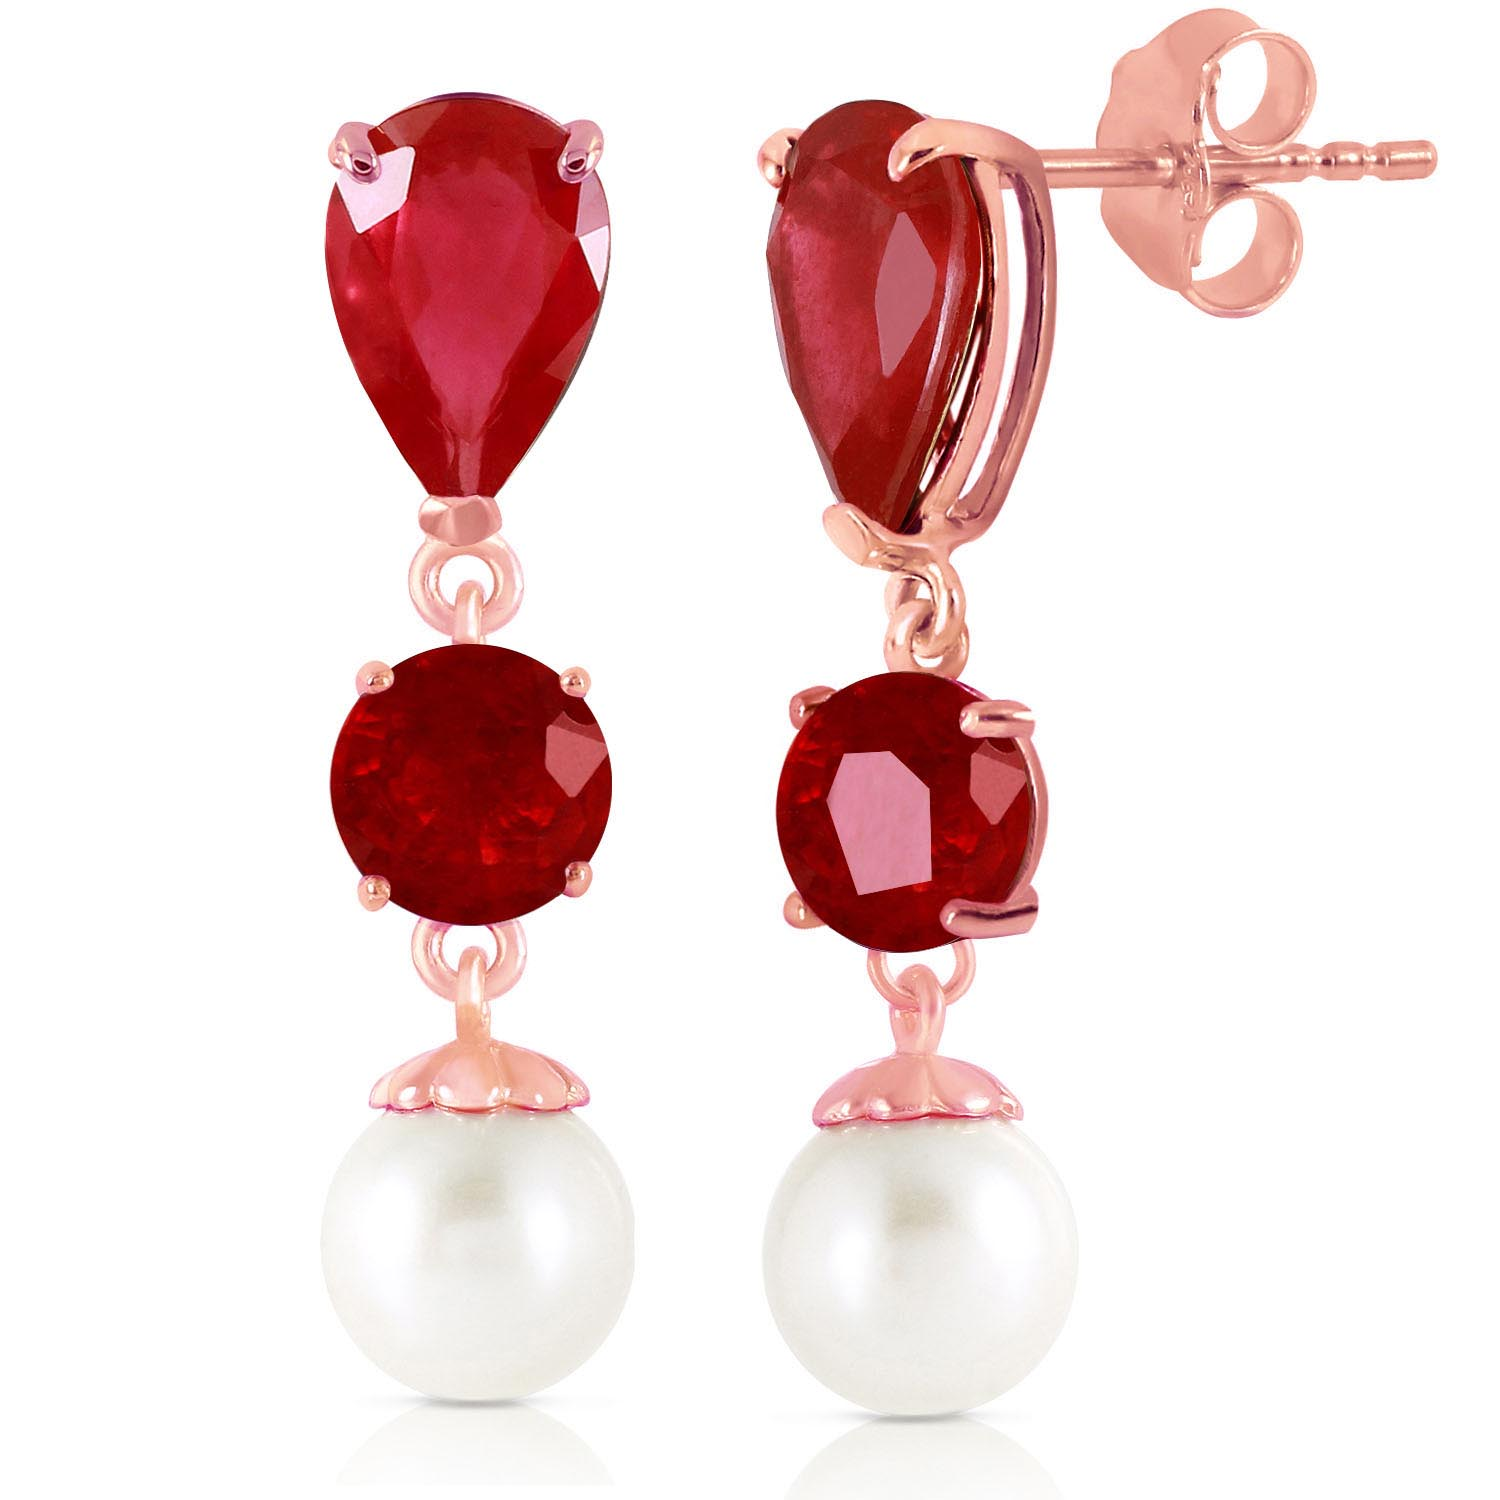 Ruby & Pearl Droplet Earrings in 9ct Rose Gold